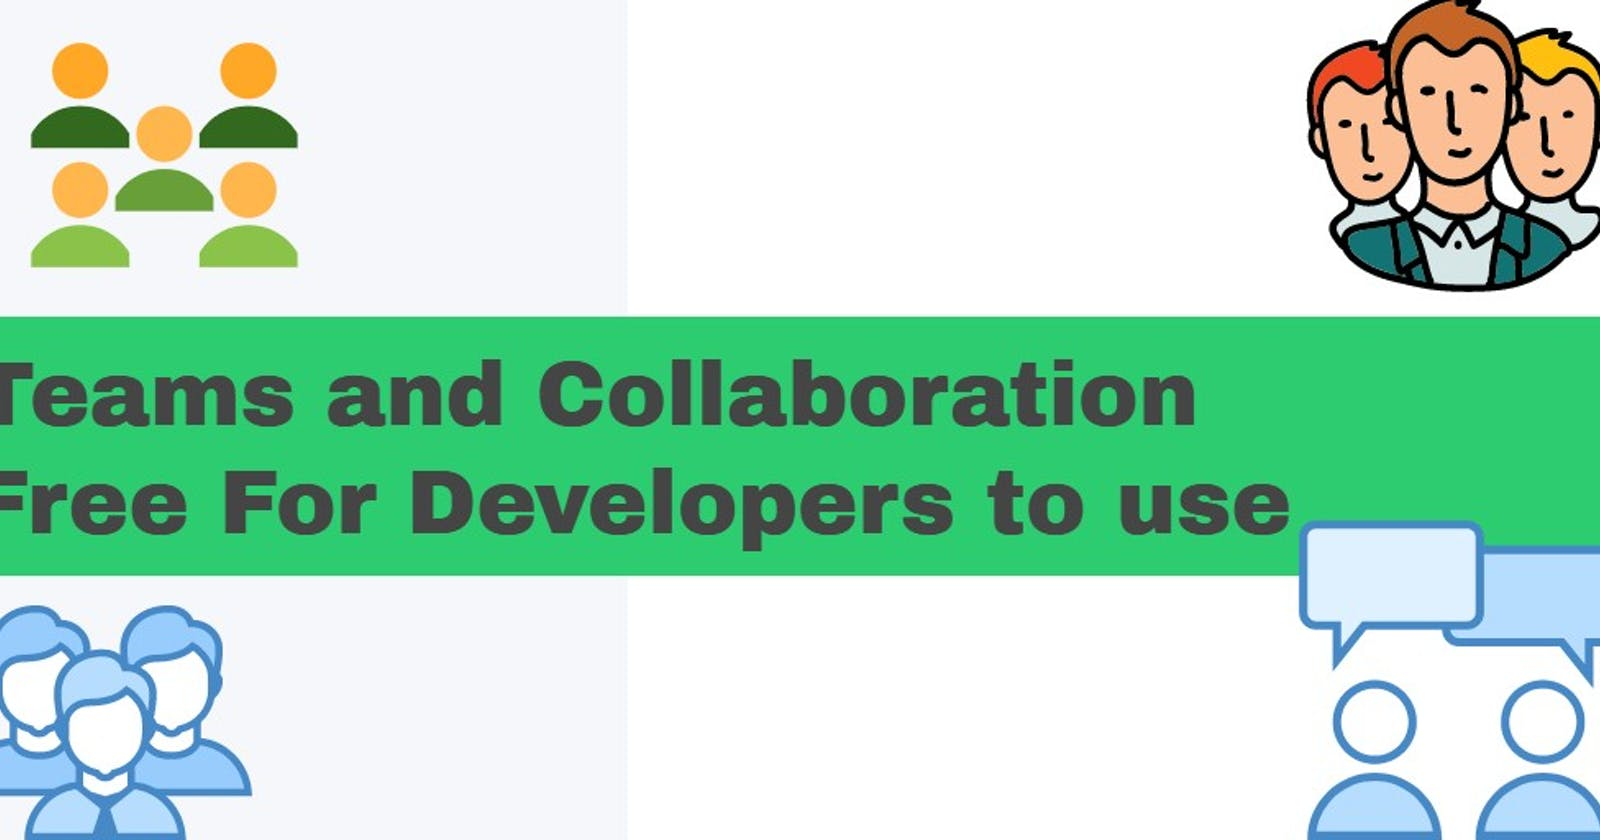 Teams and Collaboration Free For Developers to use